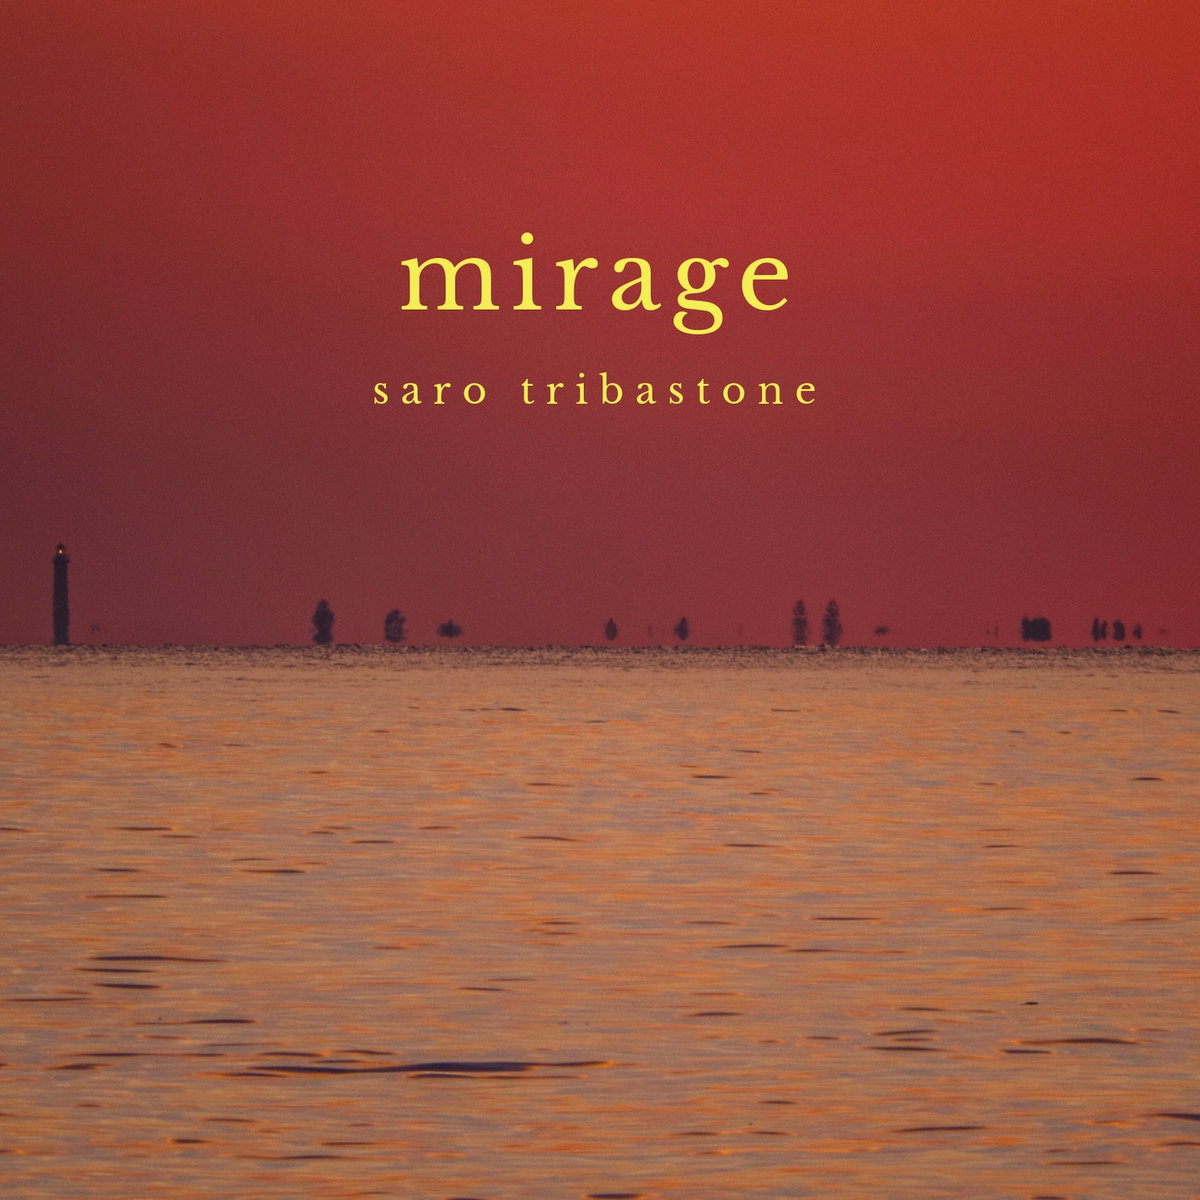 Mirage by Saro Tribastone